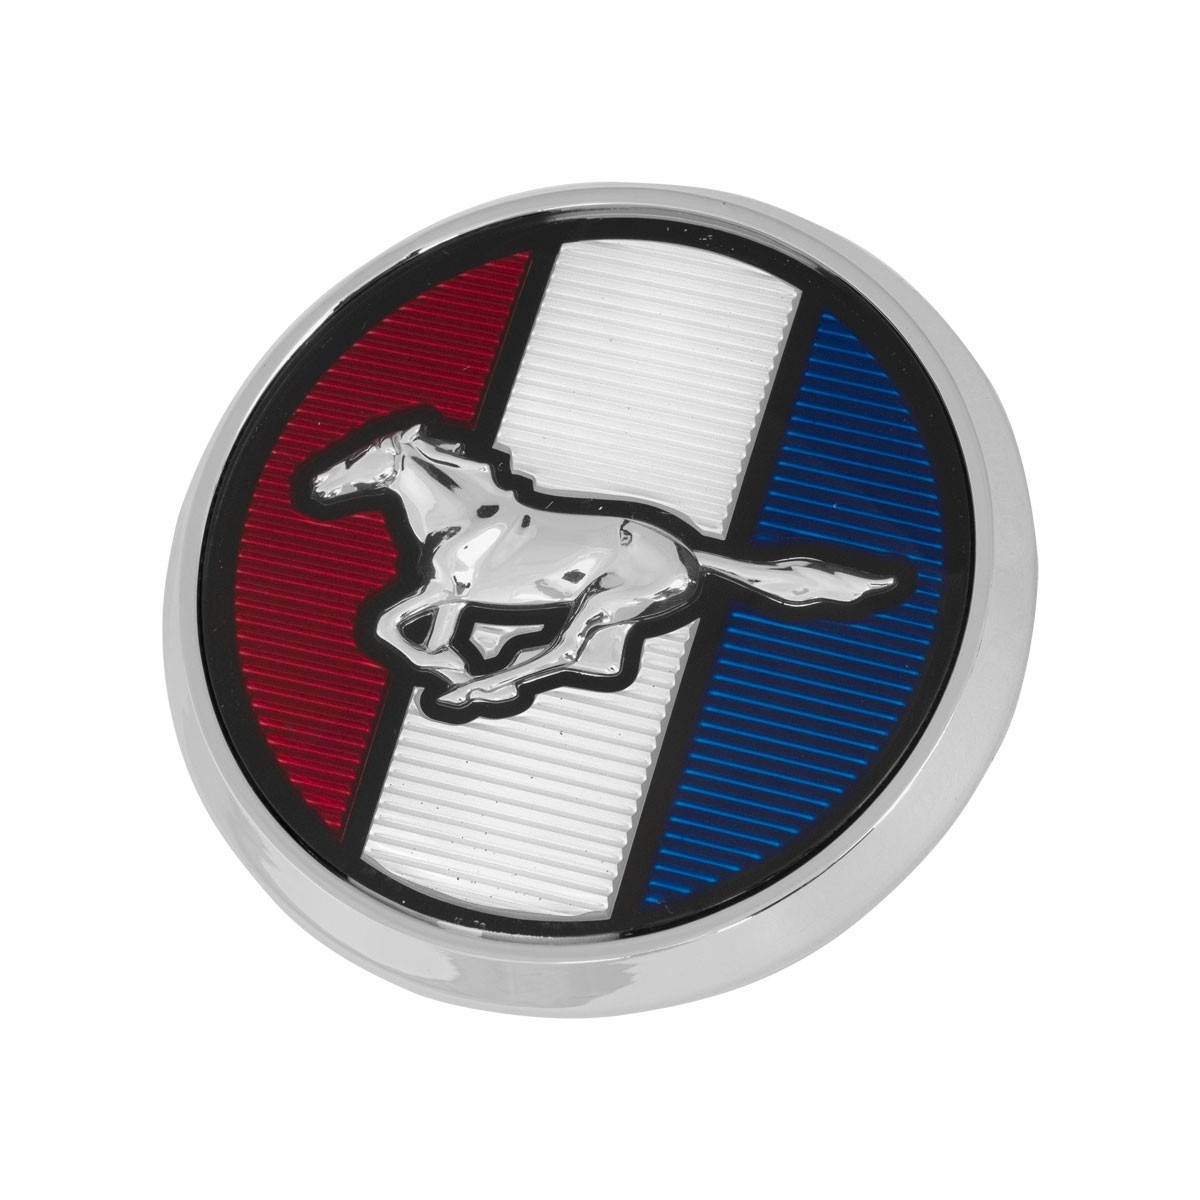 """1979-1982 Ford Mustang Front Hood Emblem Red White & Blue Running Horse 3.25"""" Round"""